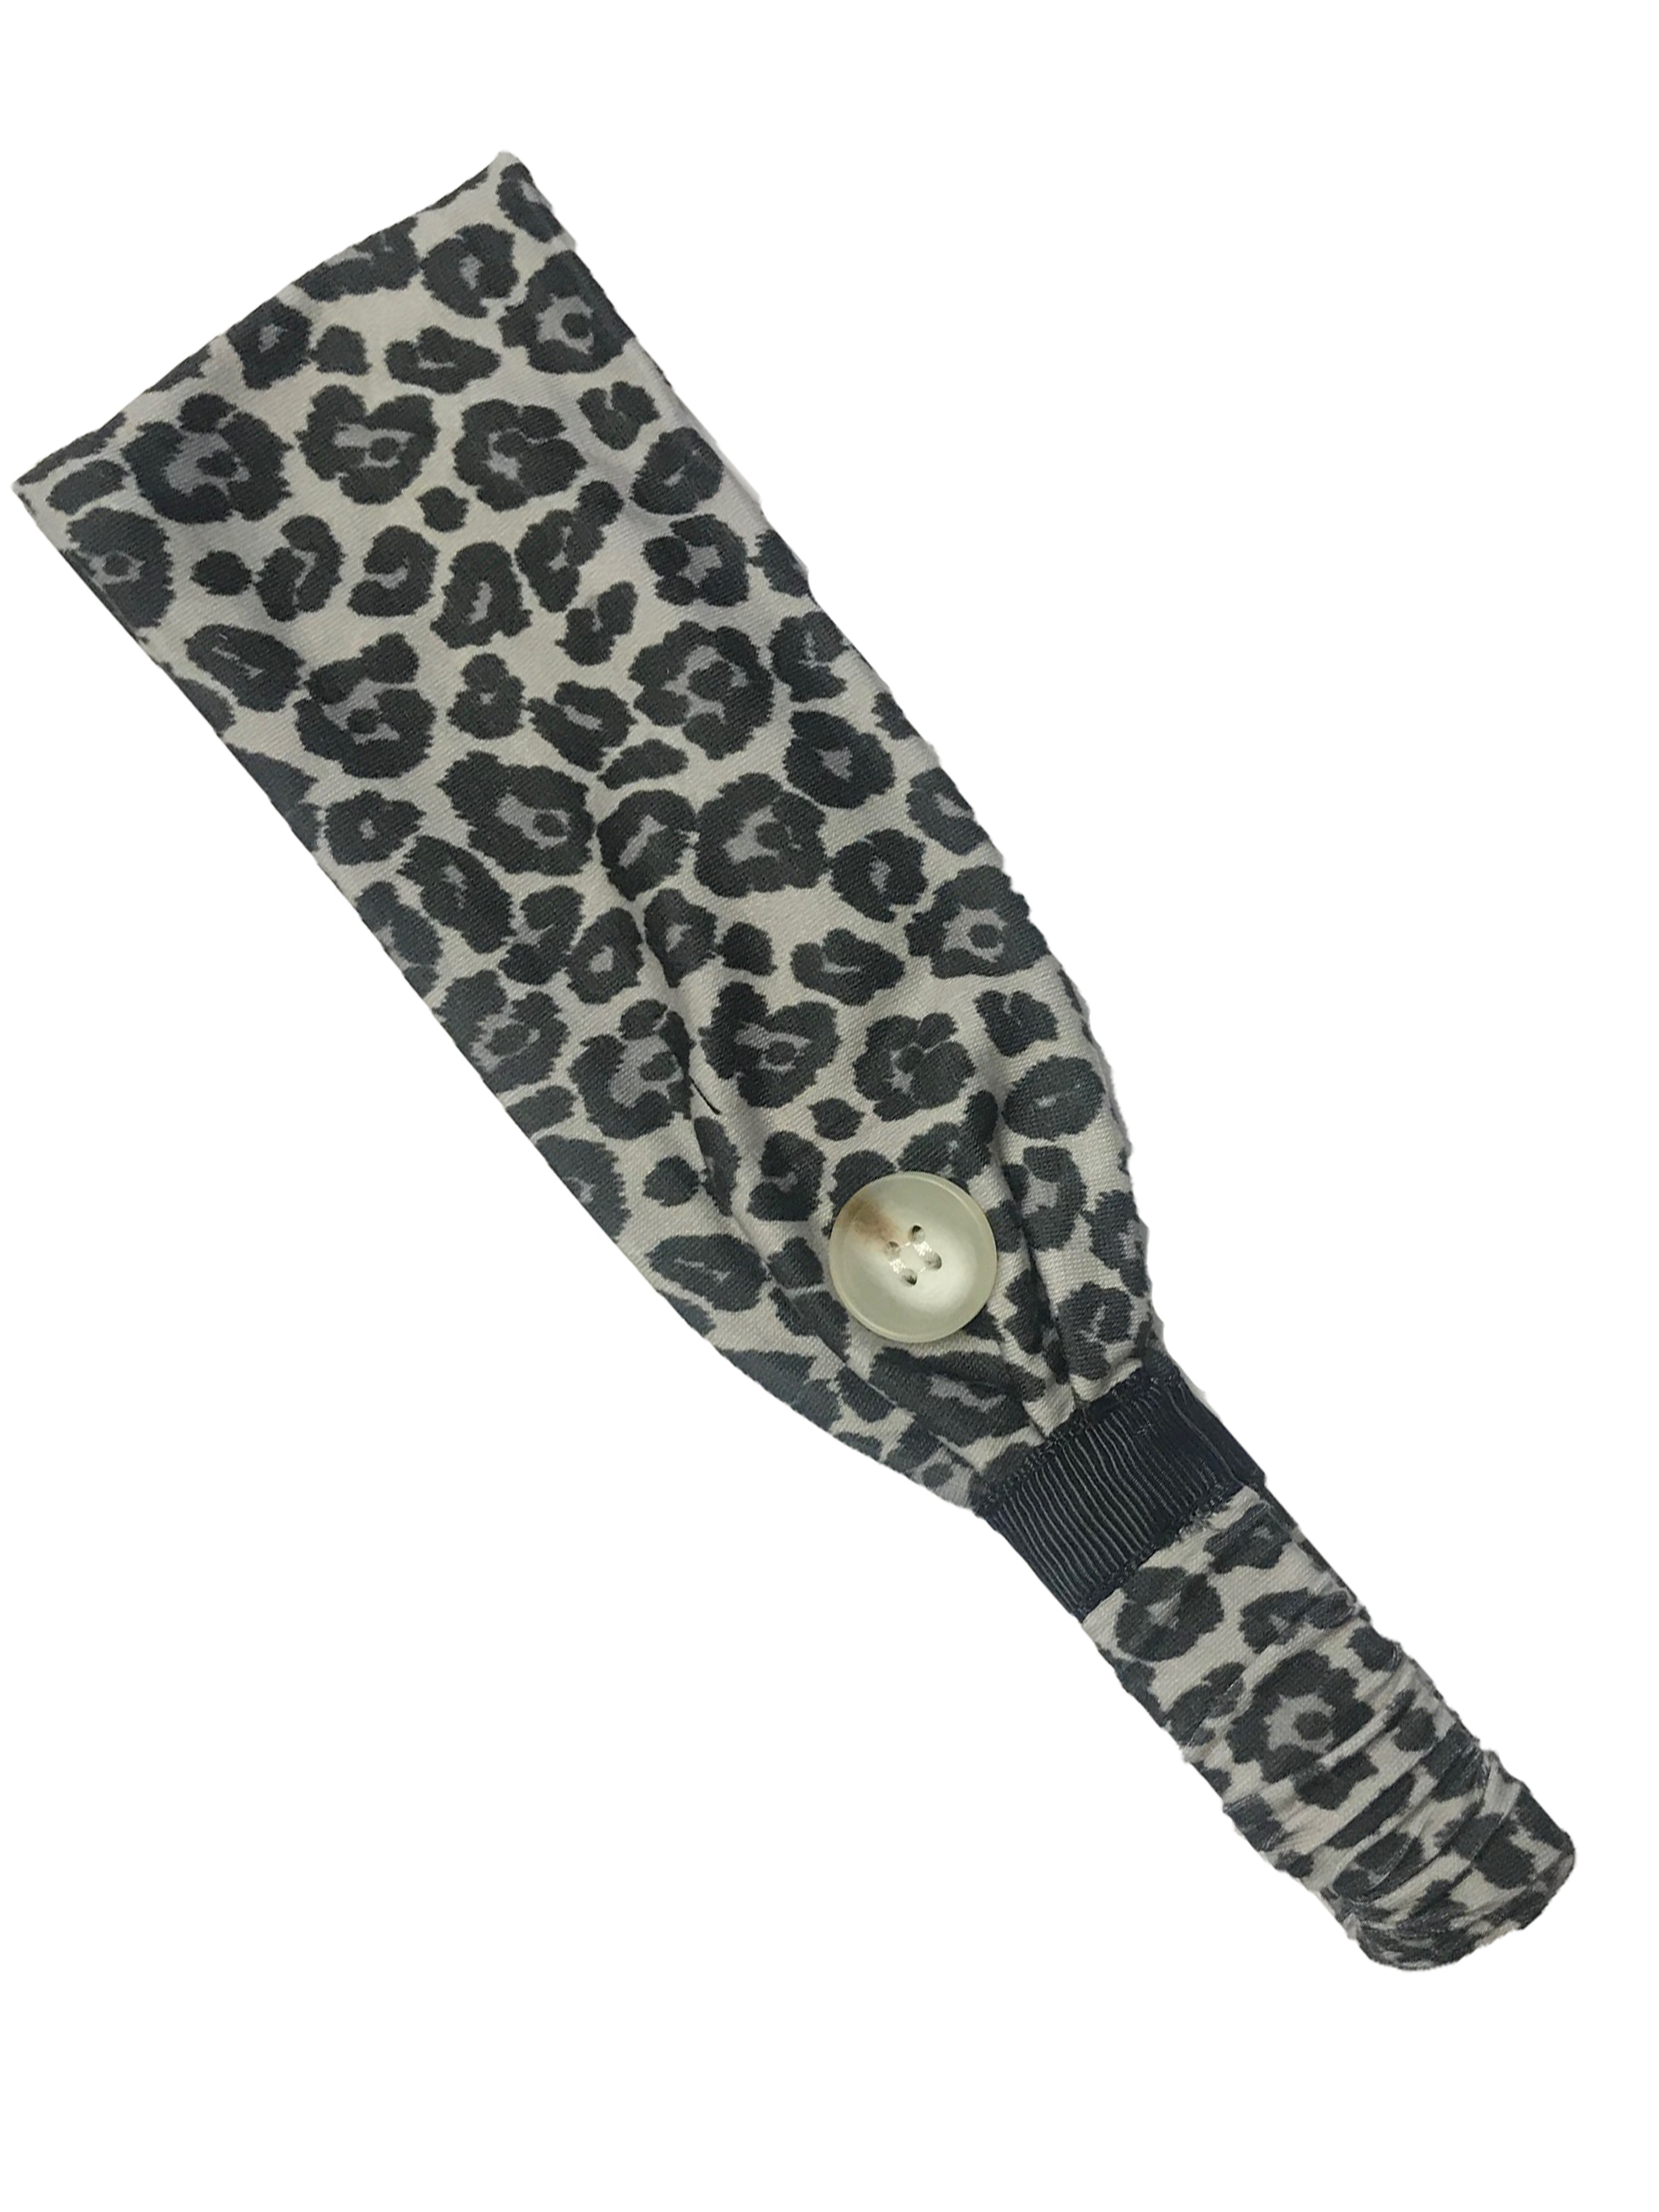 HB-2020 Adult Headband Leopard Black